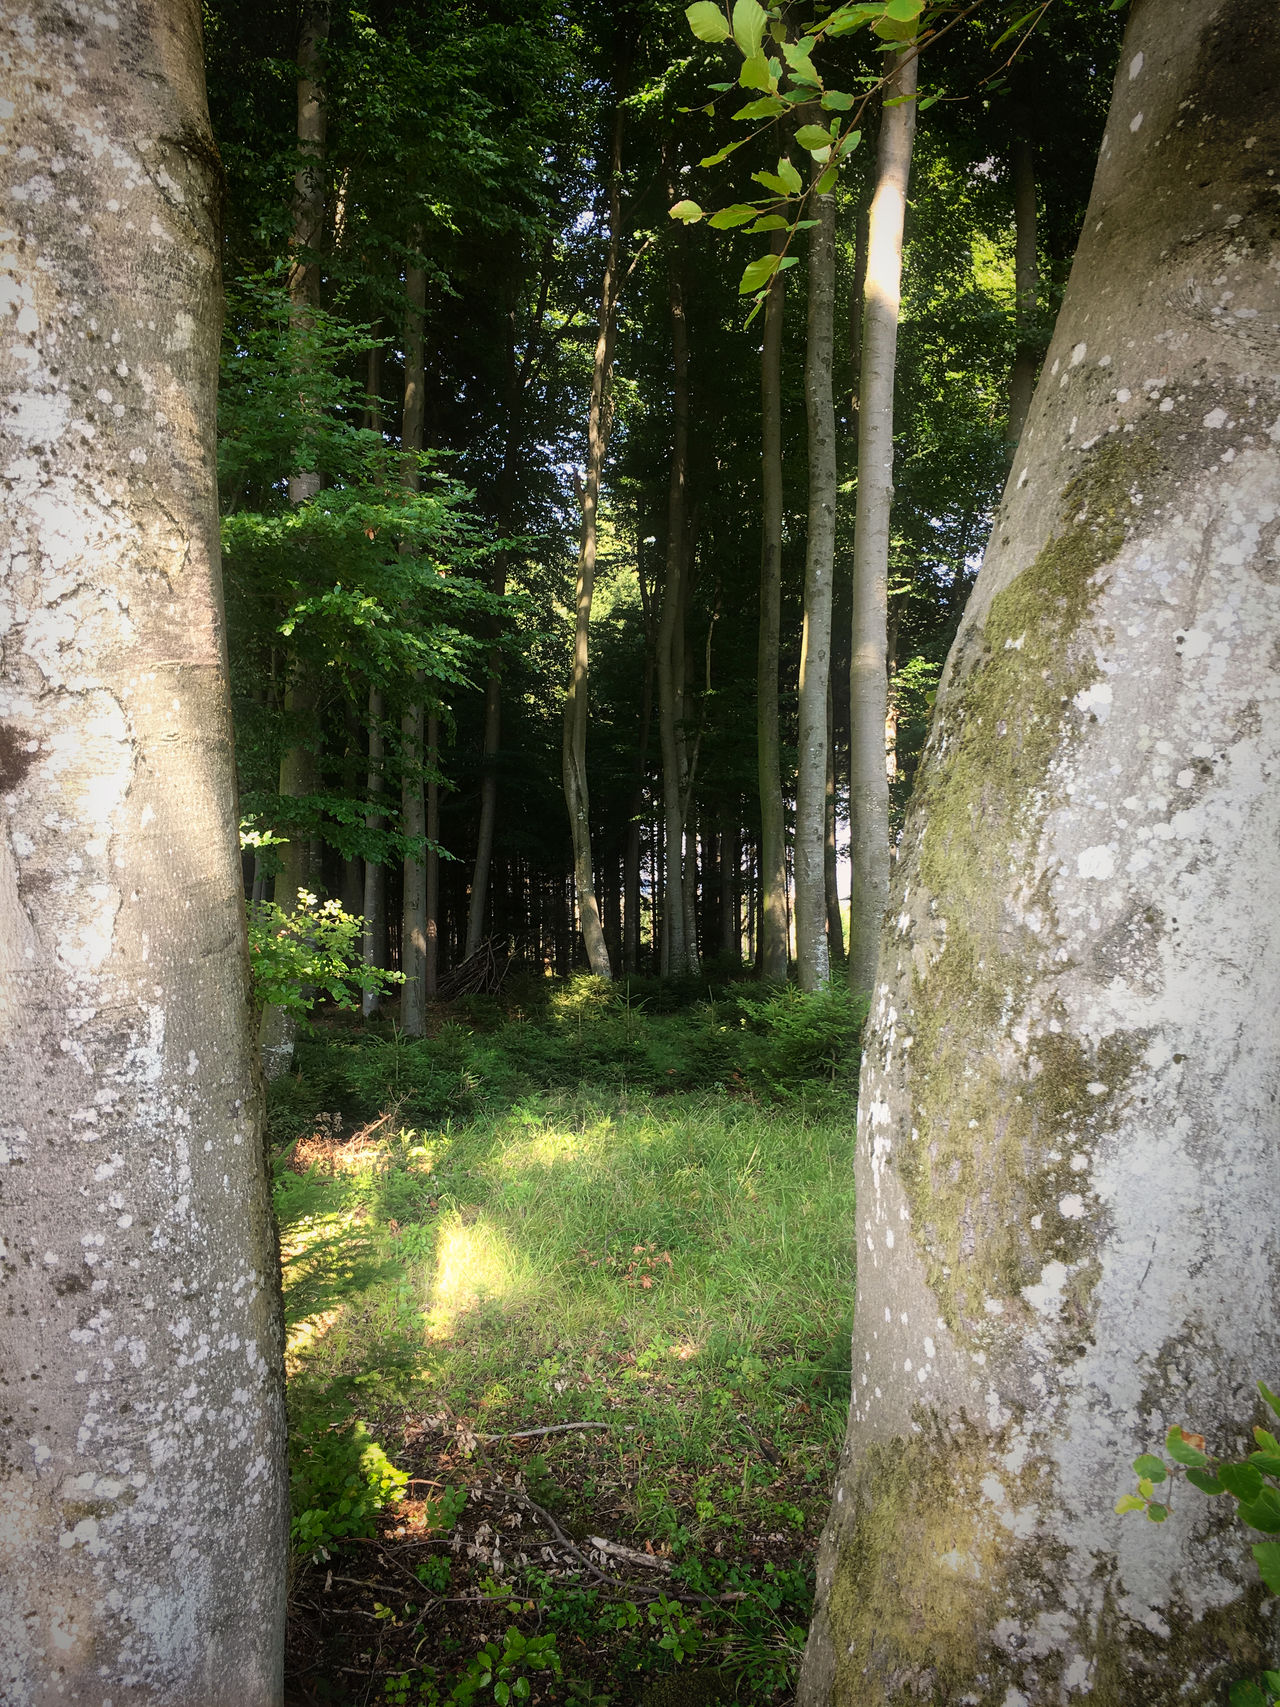 Two Trees Beauty In Nature Day Forest Grass Growth Nature No People Outdoors Scenics Tranquility Tree Tree Trunk